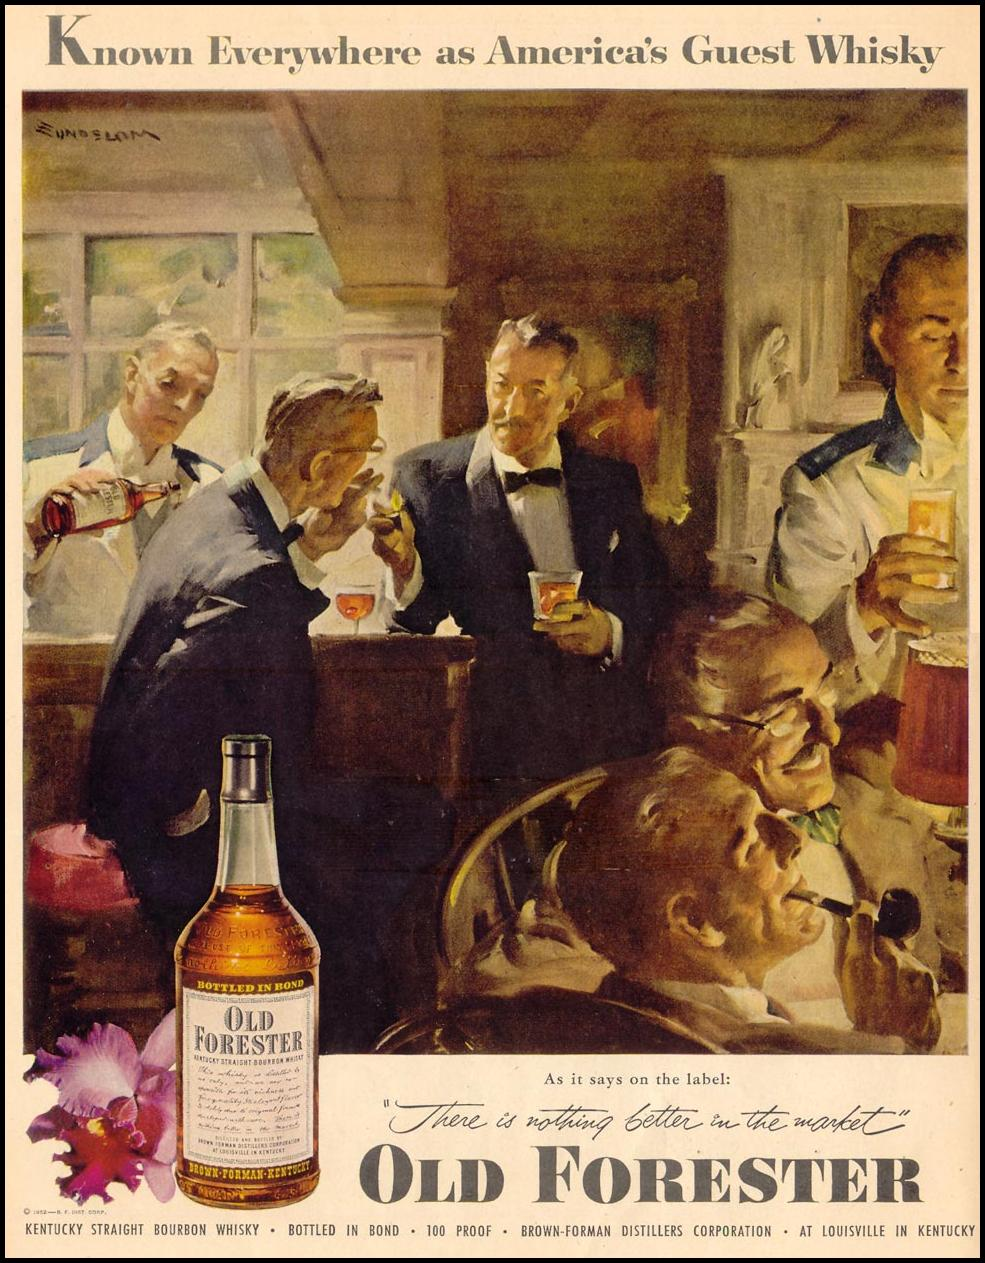 OLD FORESTER BOURBON LIFE 02/02/1953 p. 26